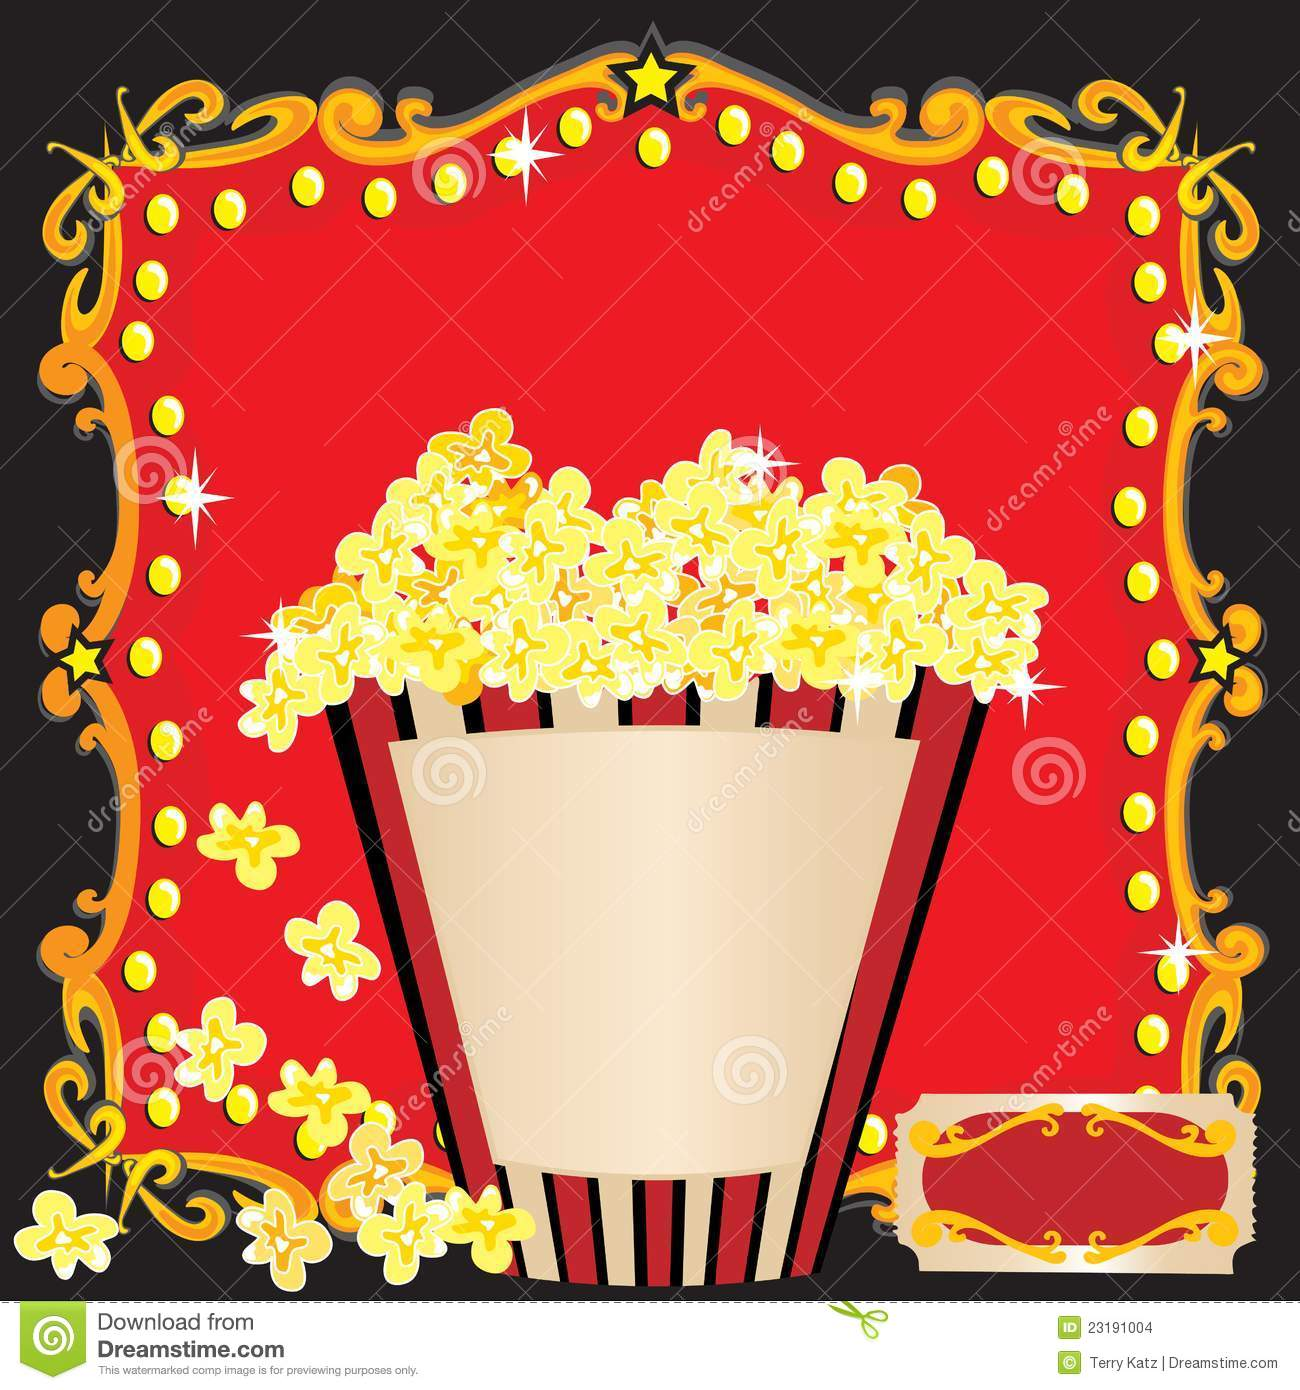 Kinderfeestje Uitnodiging Tekst Popcorn And A Movie Birthday Party Invitation Stock Images